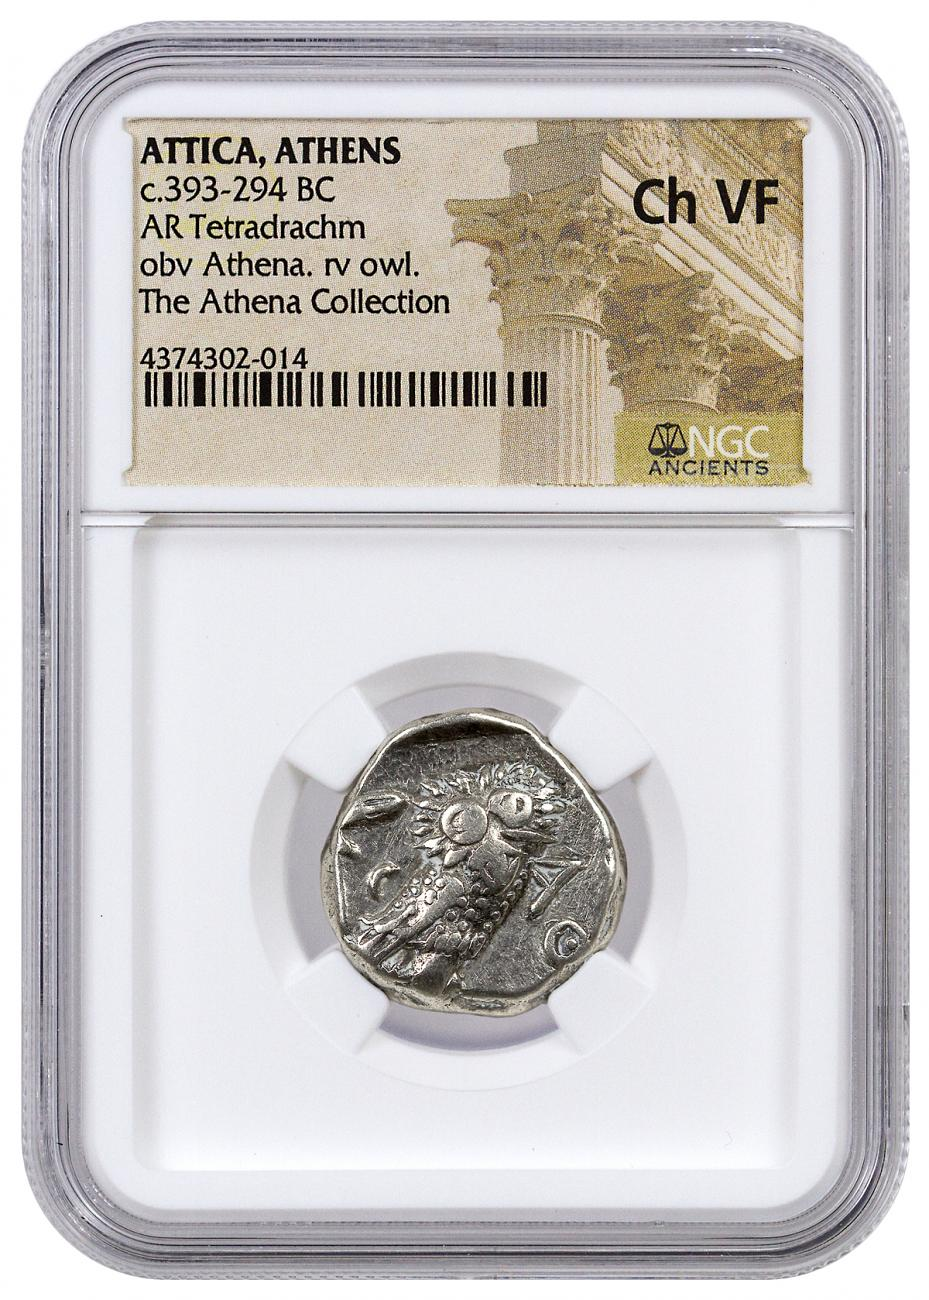 Greek City-State of Athens Silver Tetradrachm - Athena and Owl c. 393-294 BC - NGC Ch VF (Athena Collection)